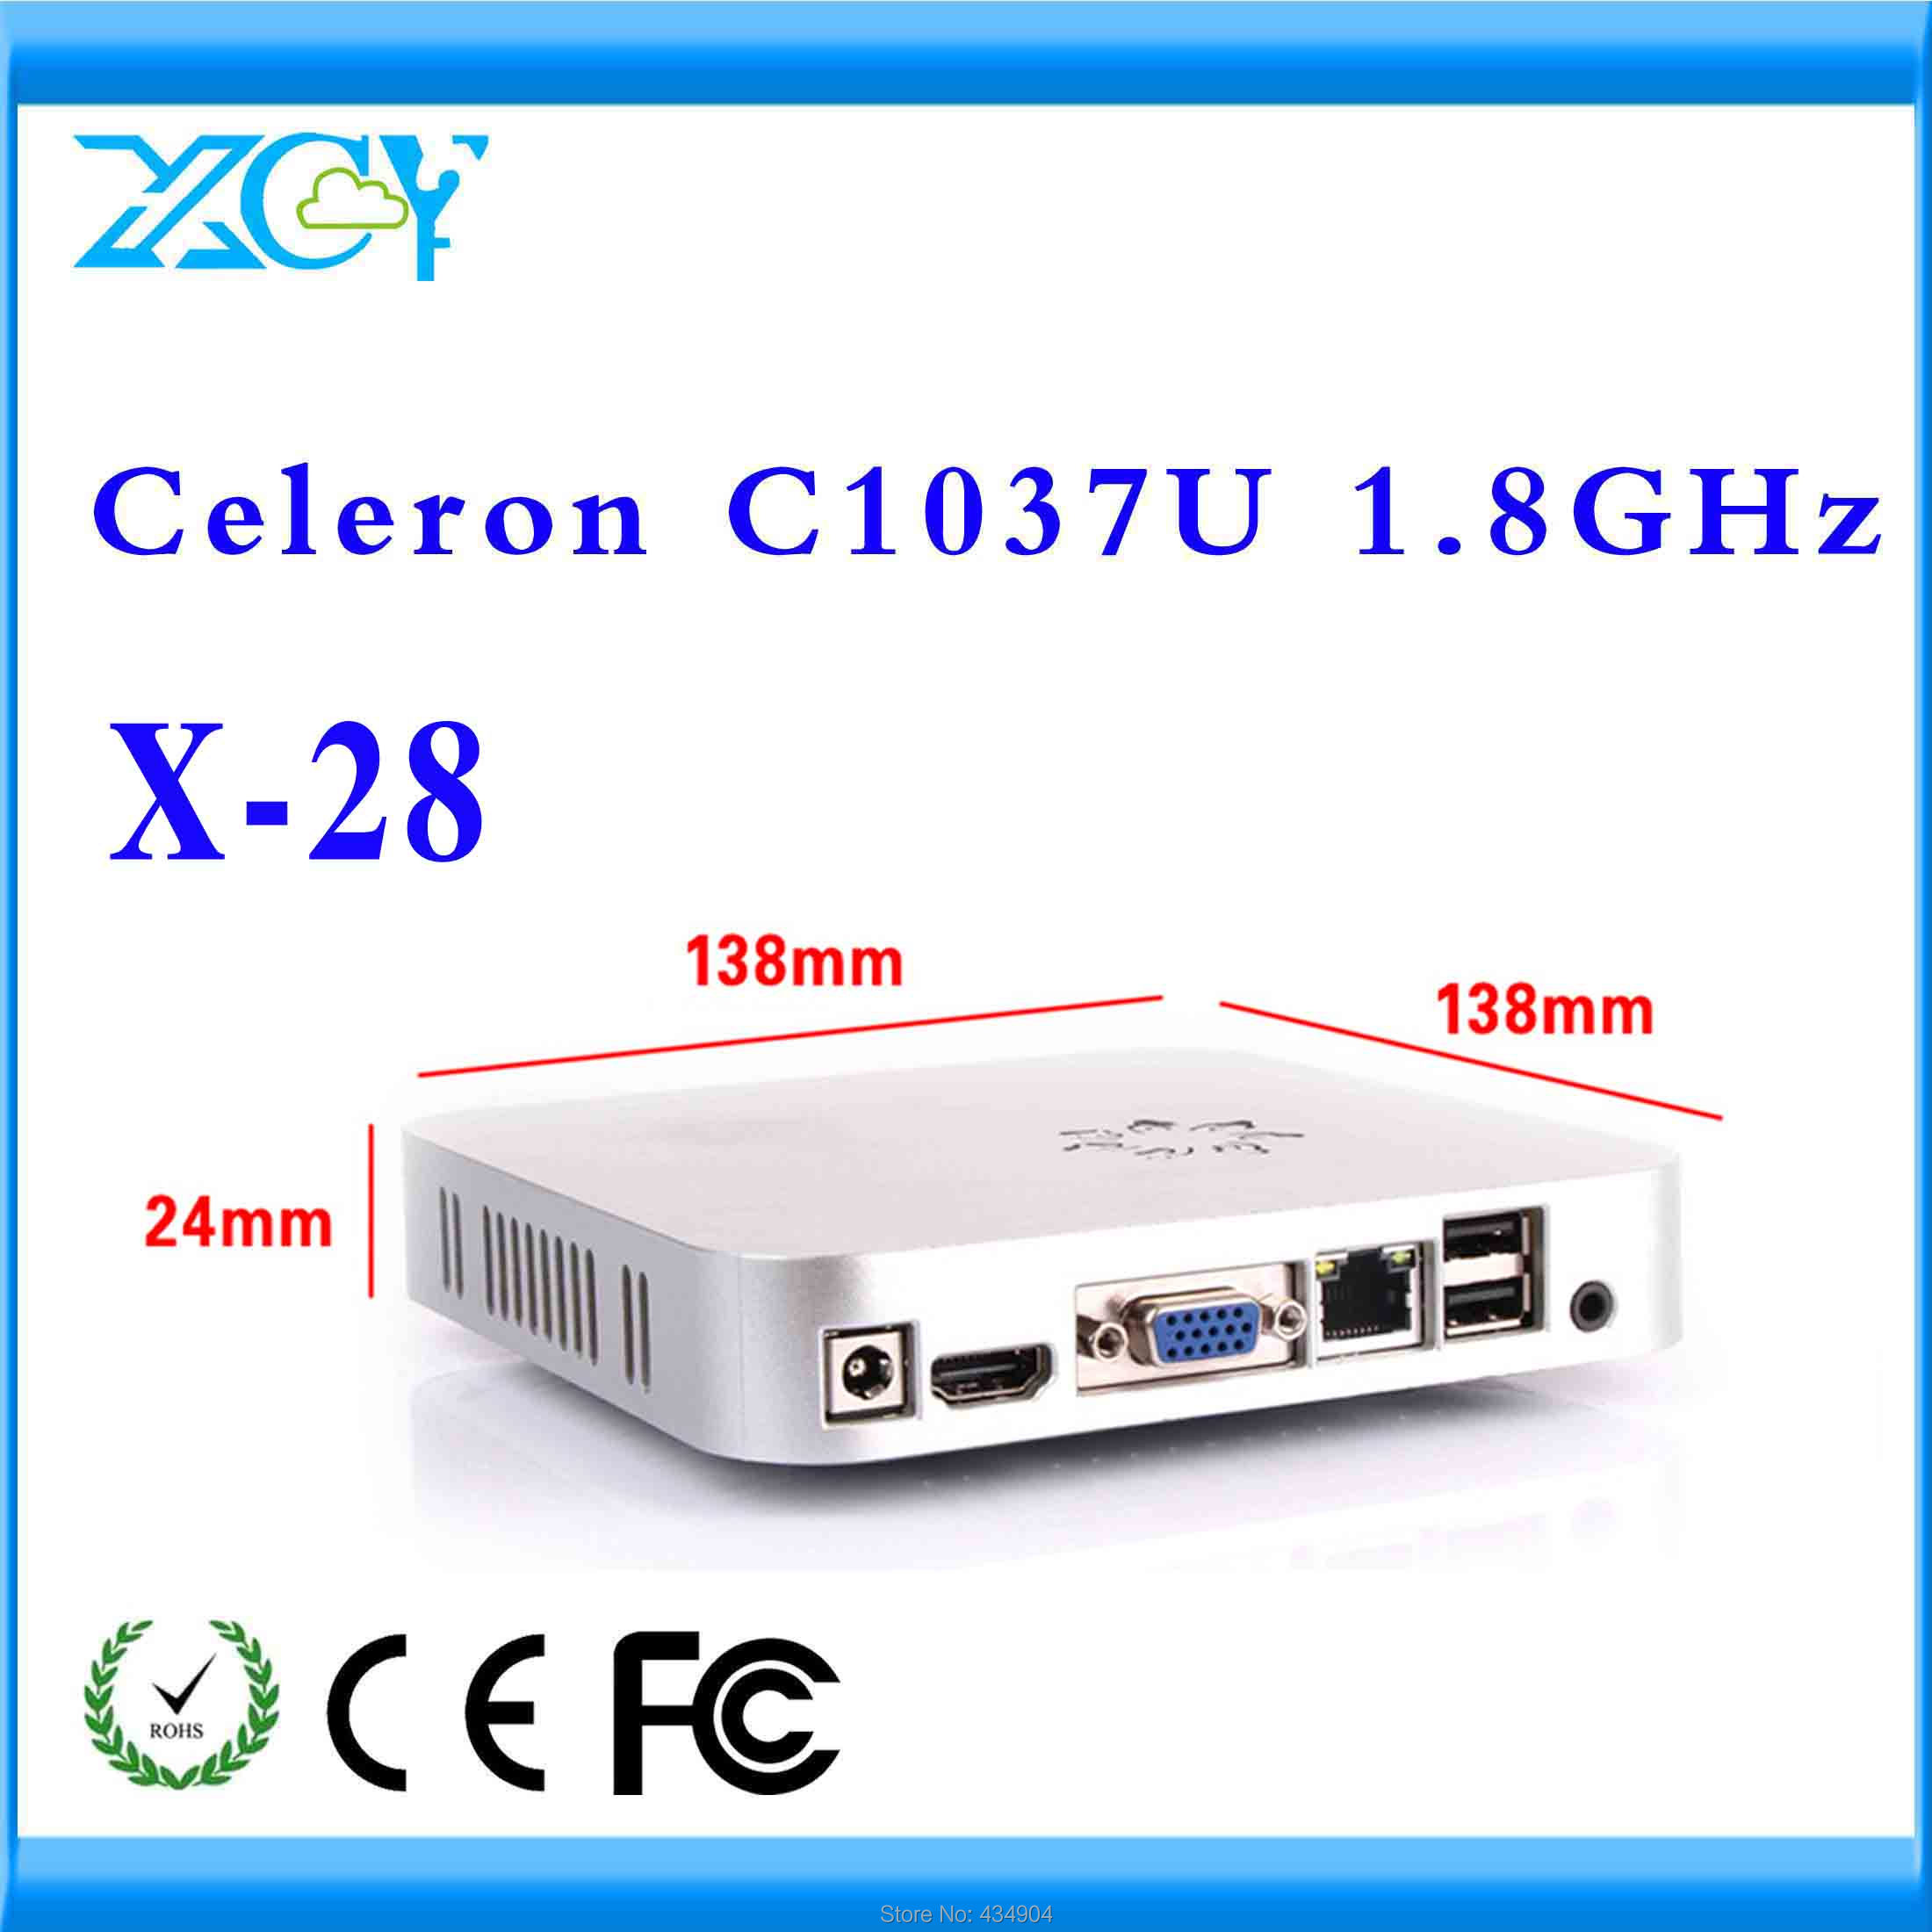 small size but durable mini pc terminal pc windows server mini itx htpc X-28 c1037u very small but powerfull PC support hd video(China (Mainland))